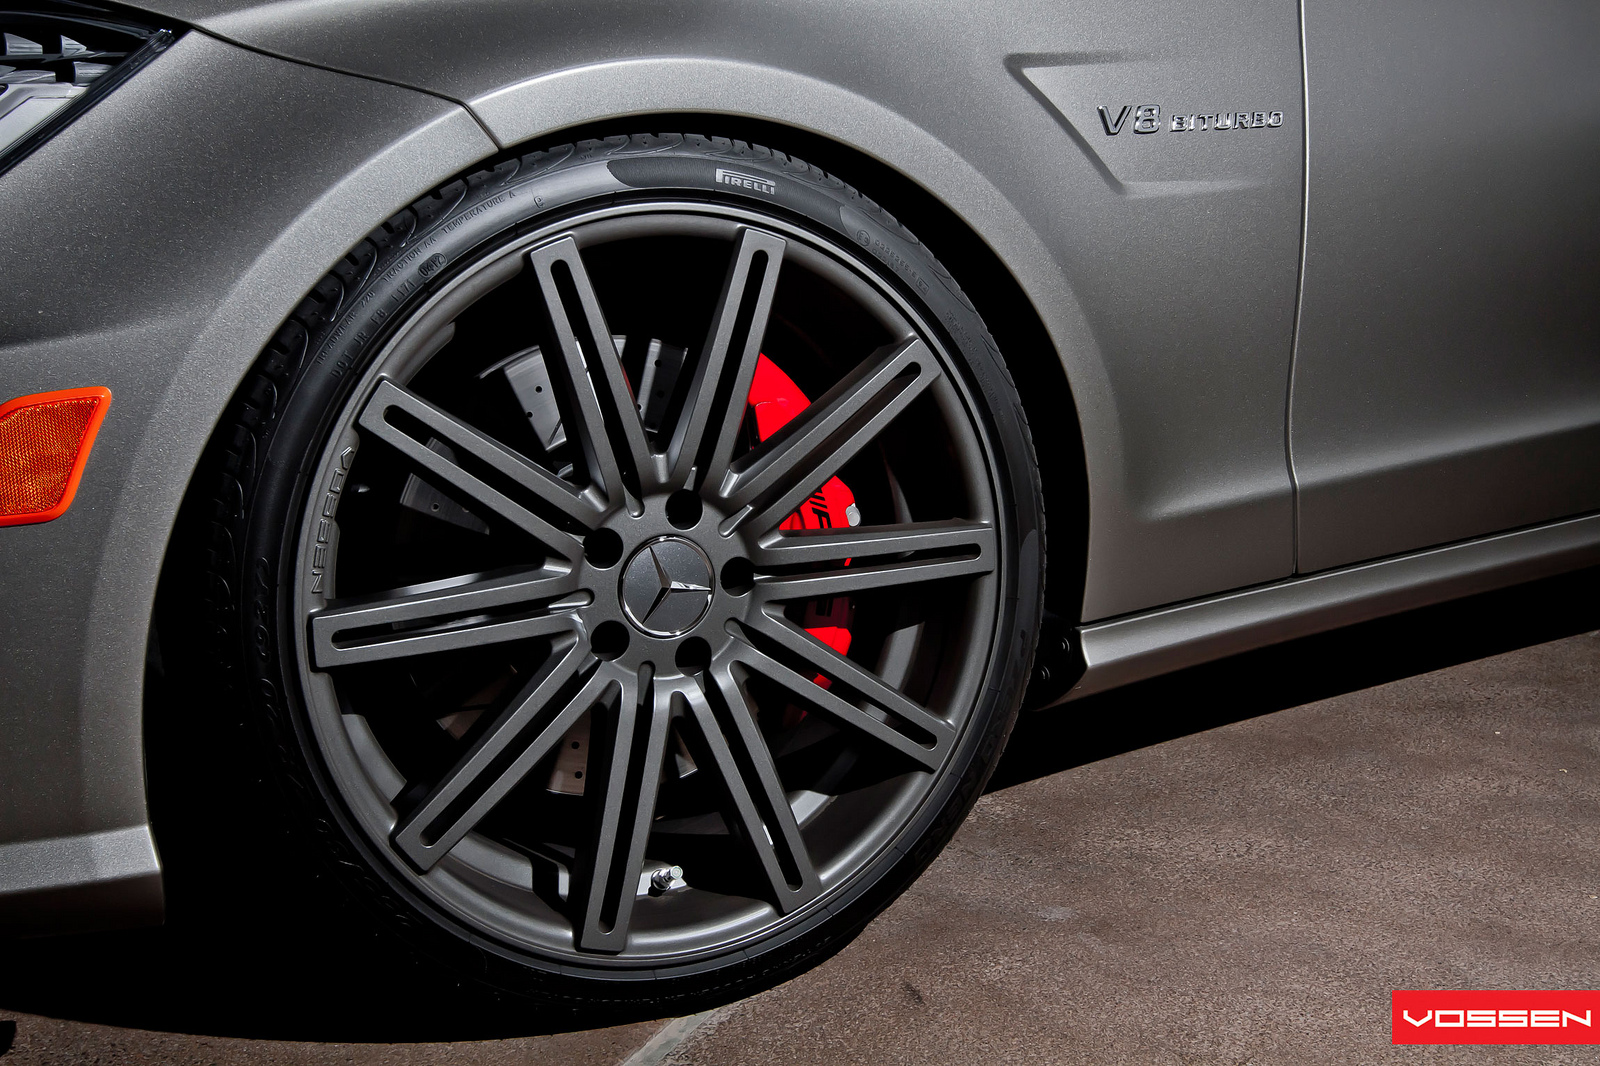 Mercedes cls63 amg on vossen 20 inch rims autoevolution for Mercedes benz 20 inch wheels